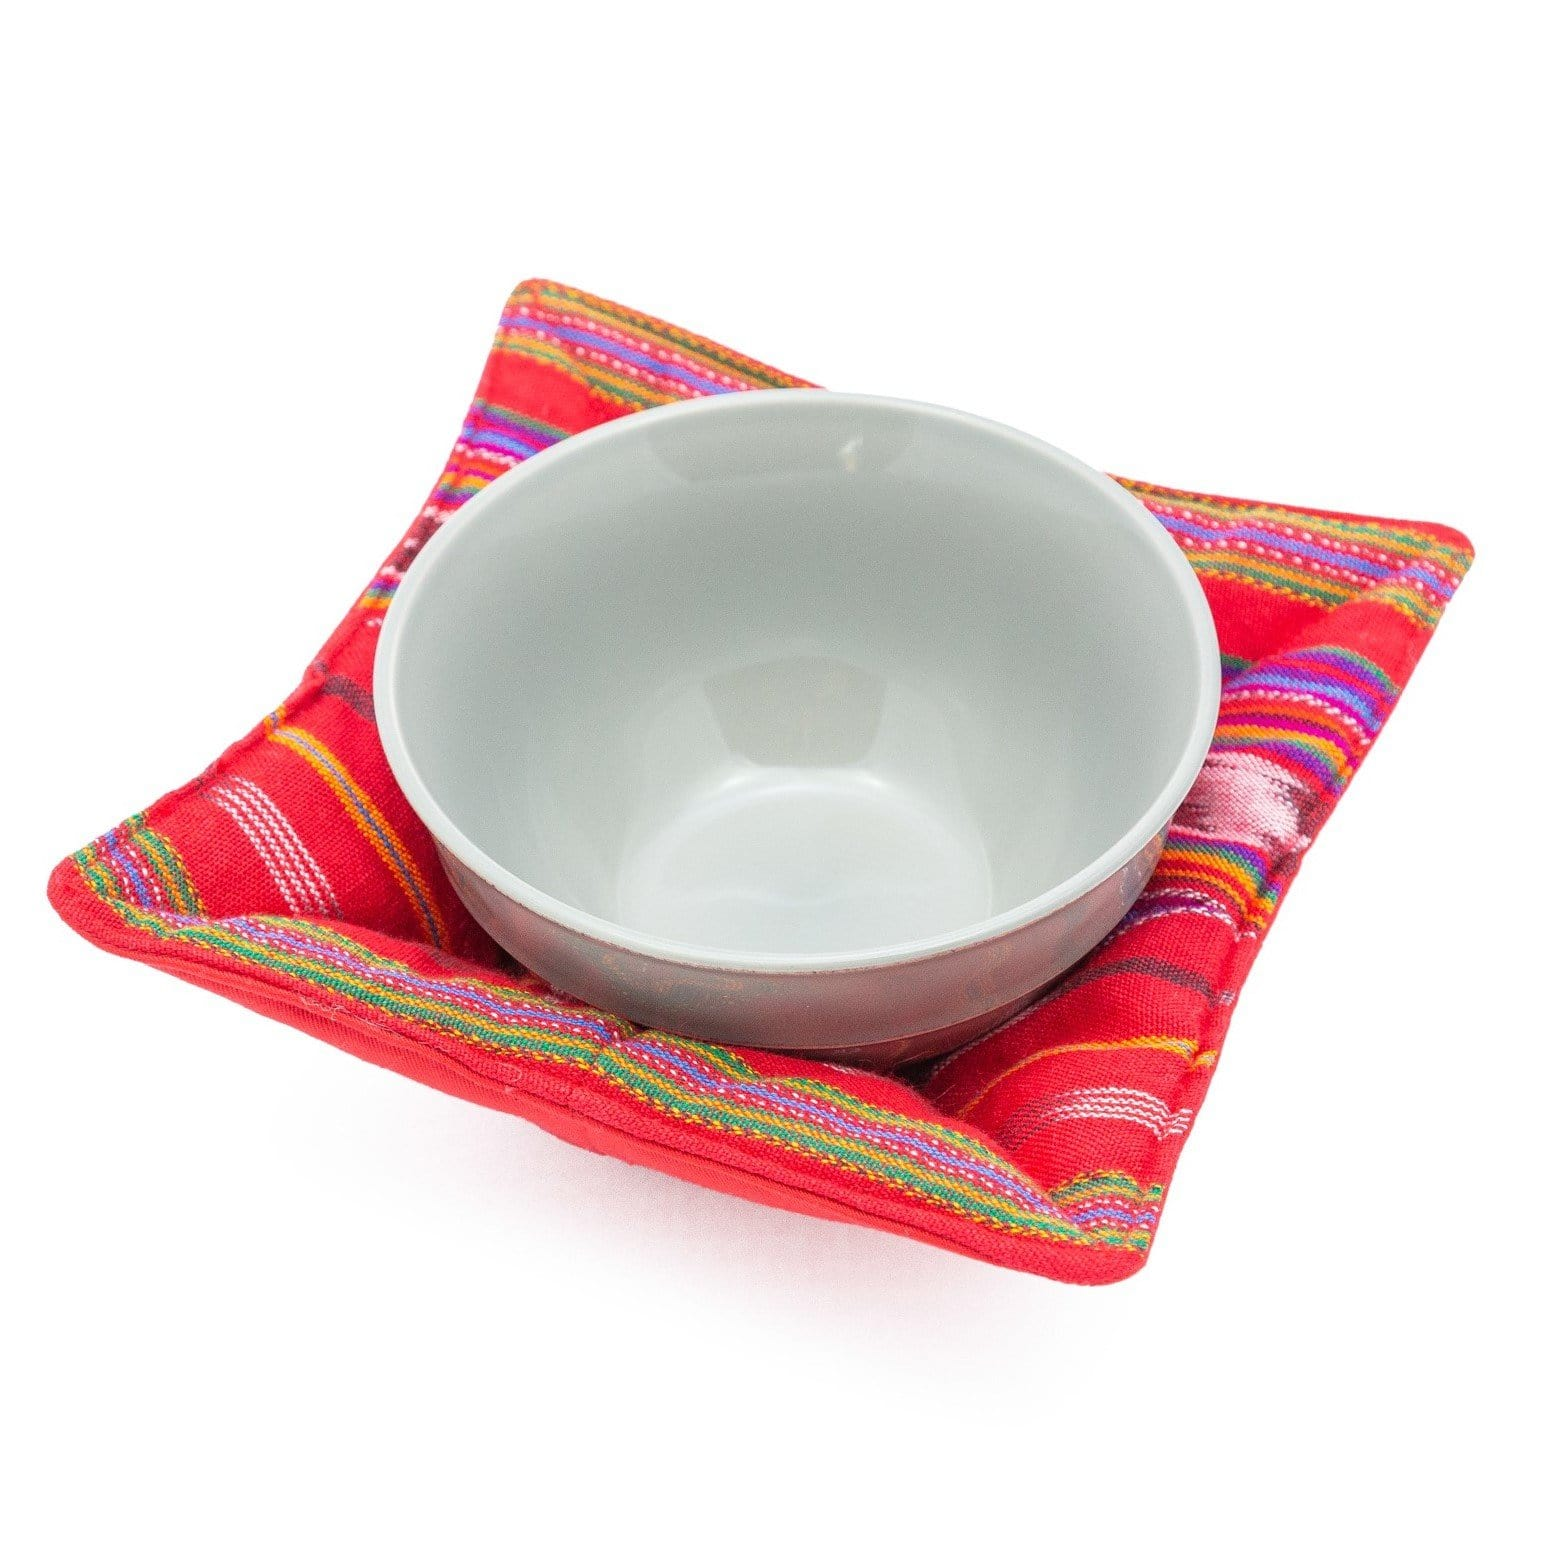 Microwave Bowl Cozy - Festive Red